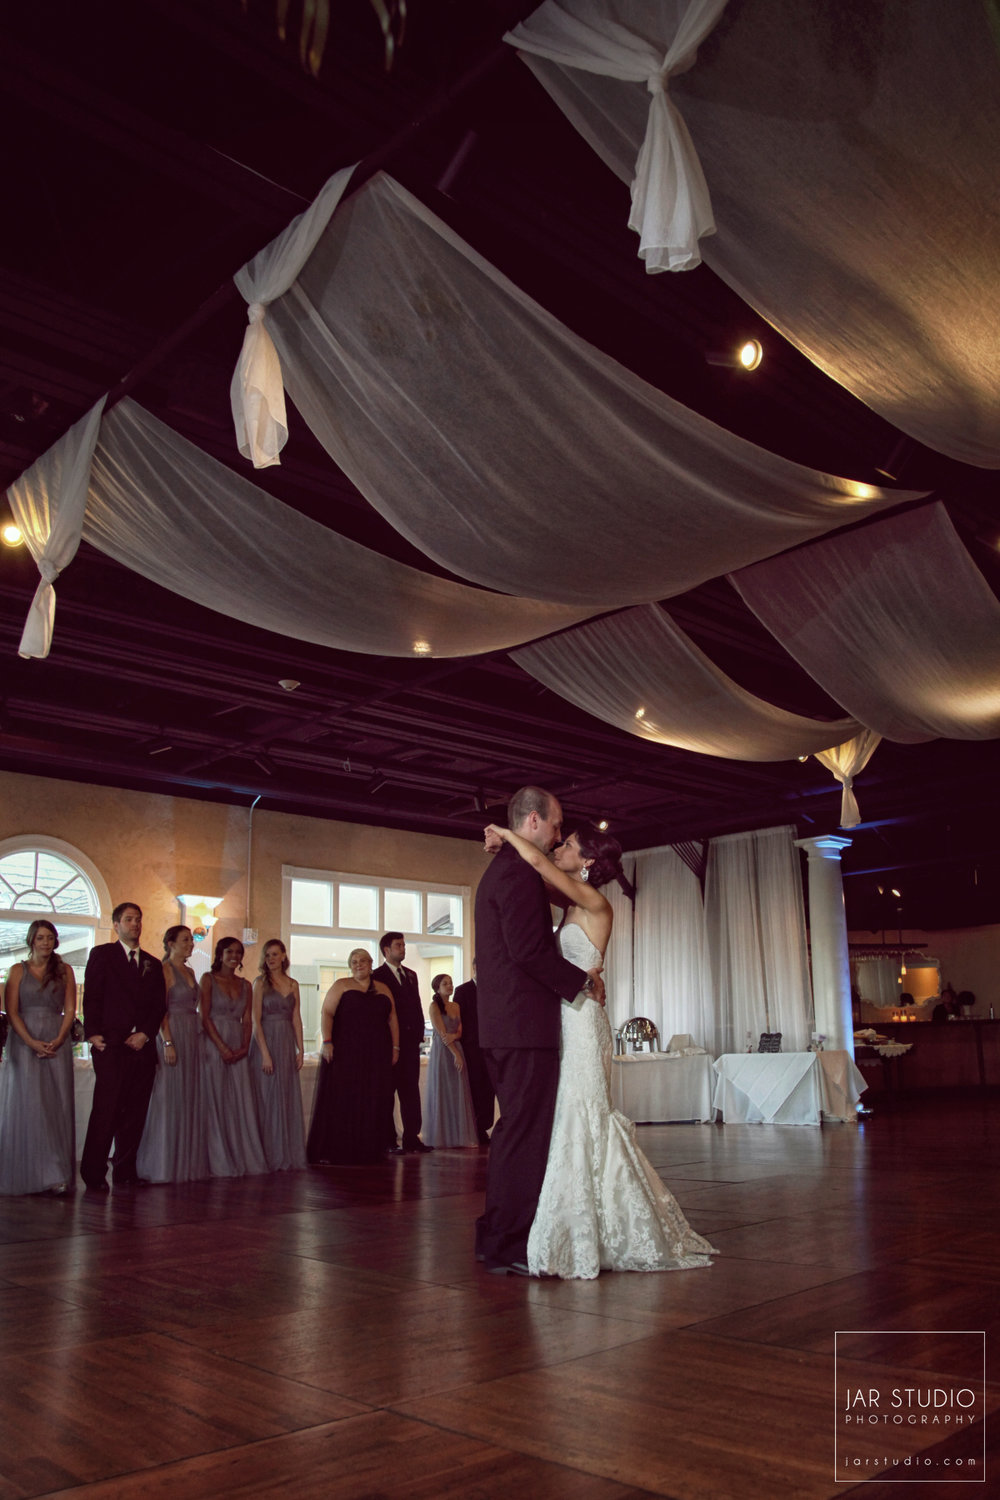 24-beautiful-reception-the-grand-ballroom-st.augustine-jarstudio-photography.JPG